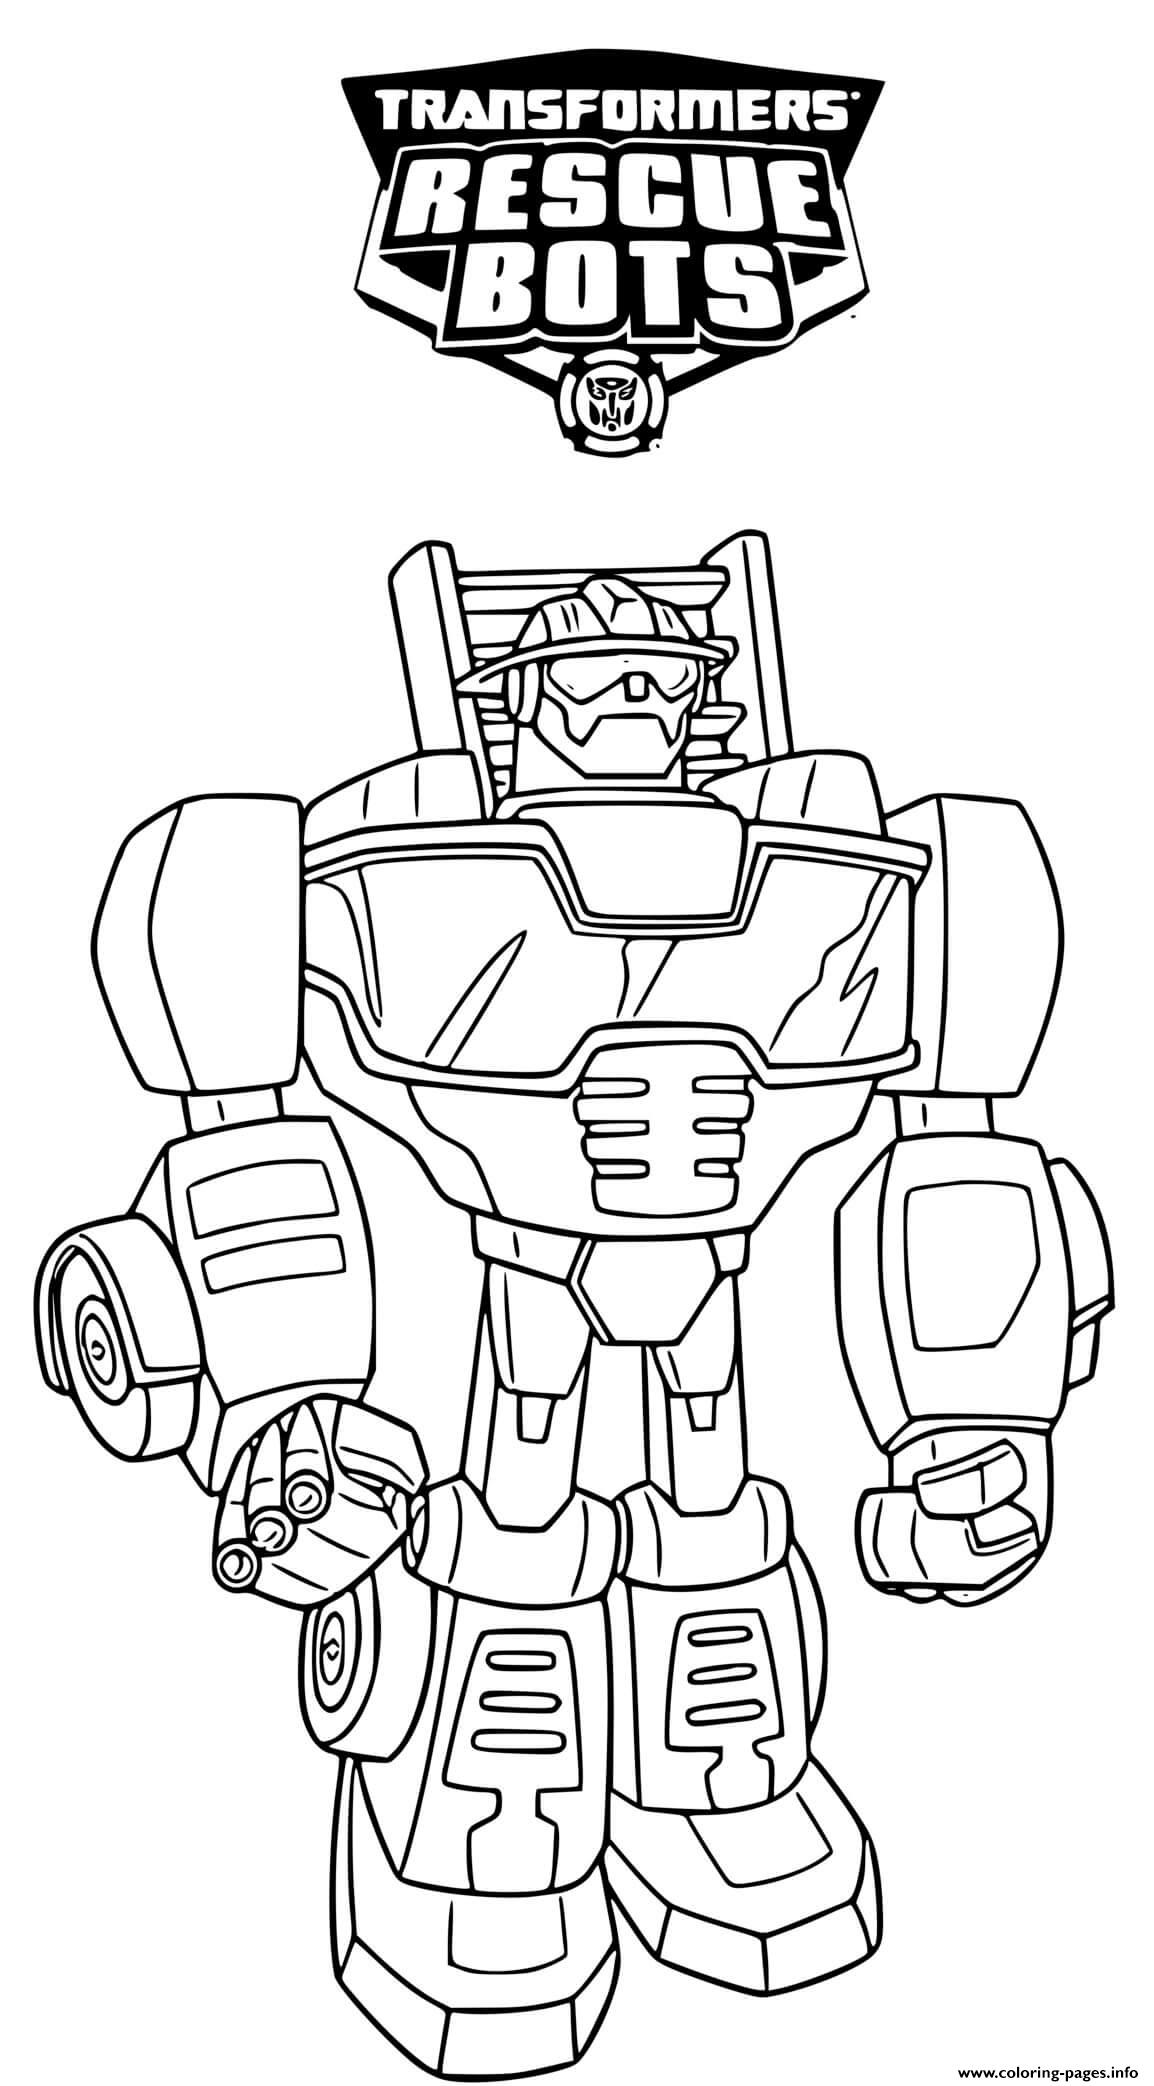 coloring pages transformers transformers coloring pages coloring pages to download pages transformers coloring